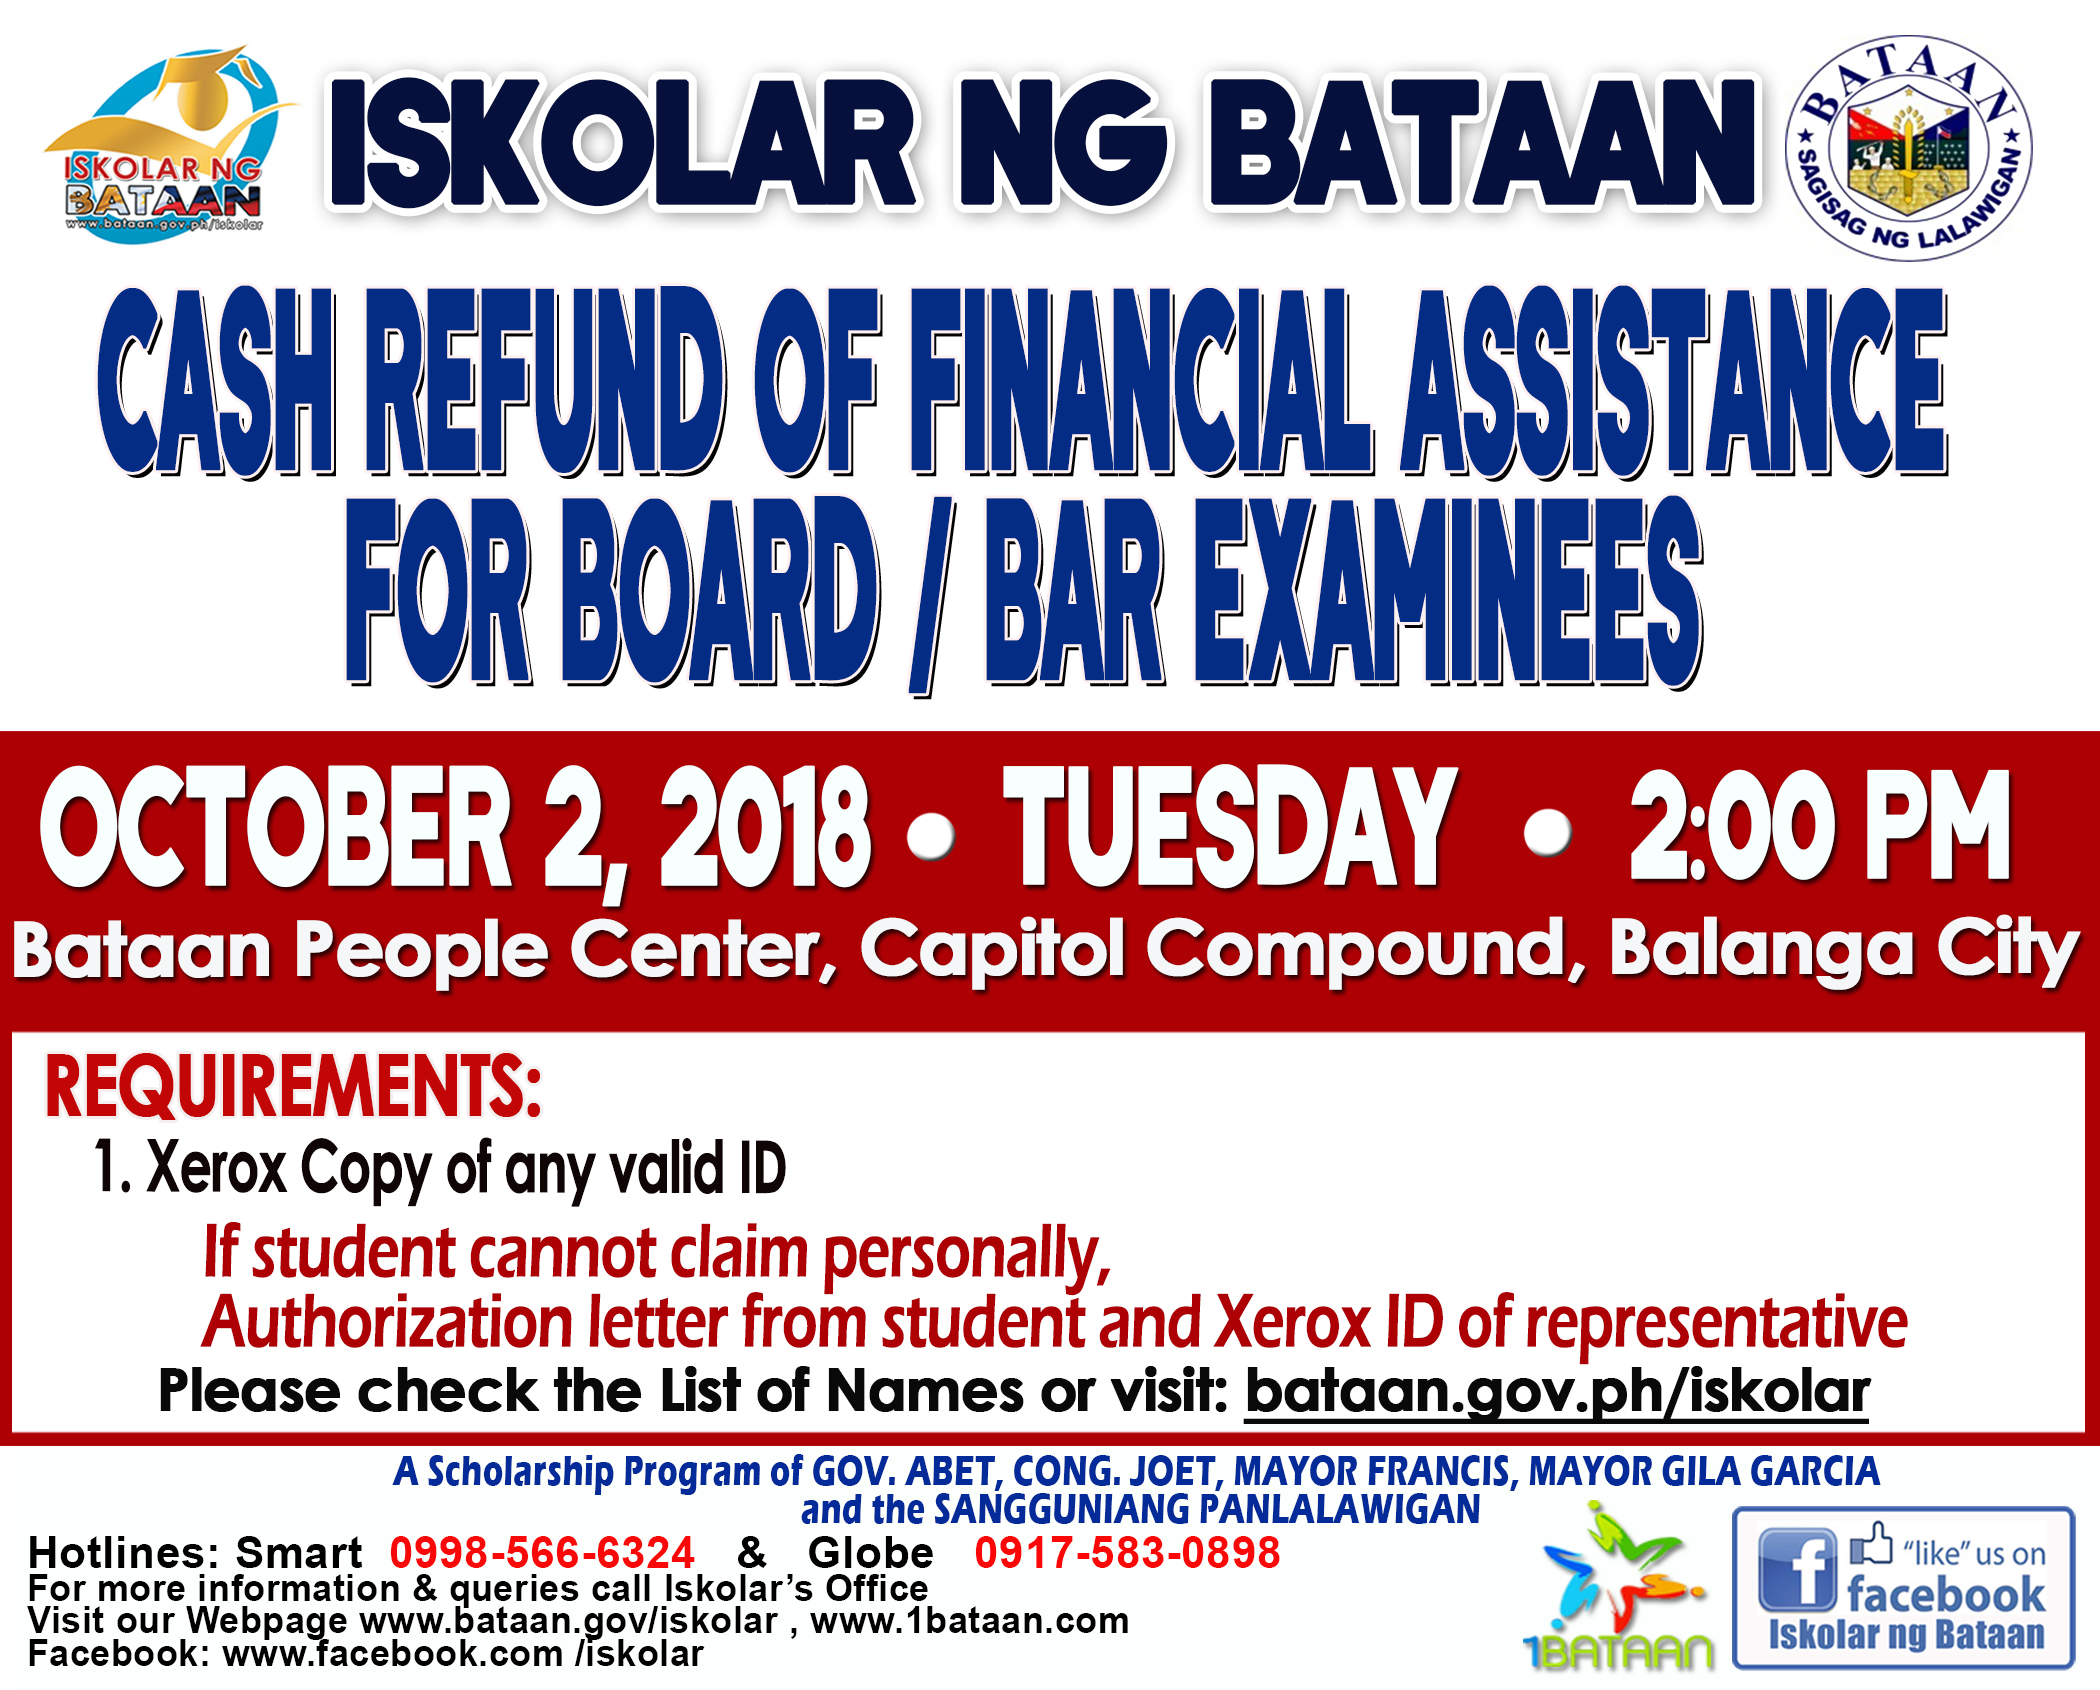 Cash Refund of Financial Assistance for Board / Bar Examinees